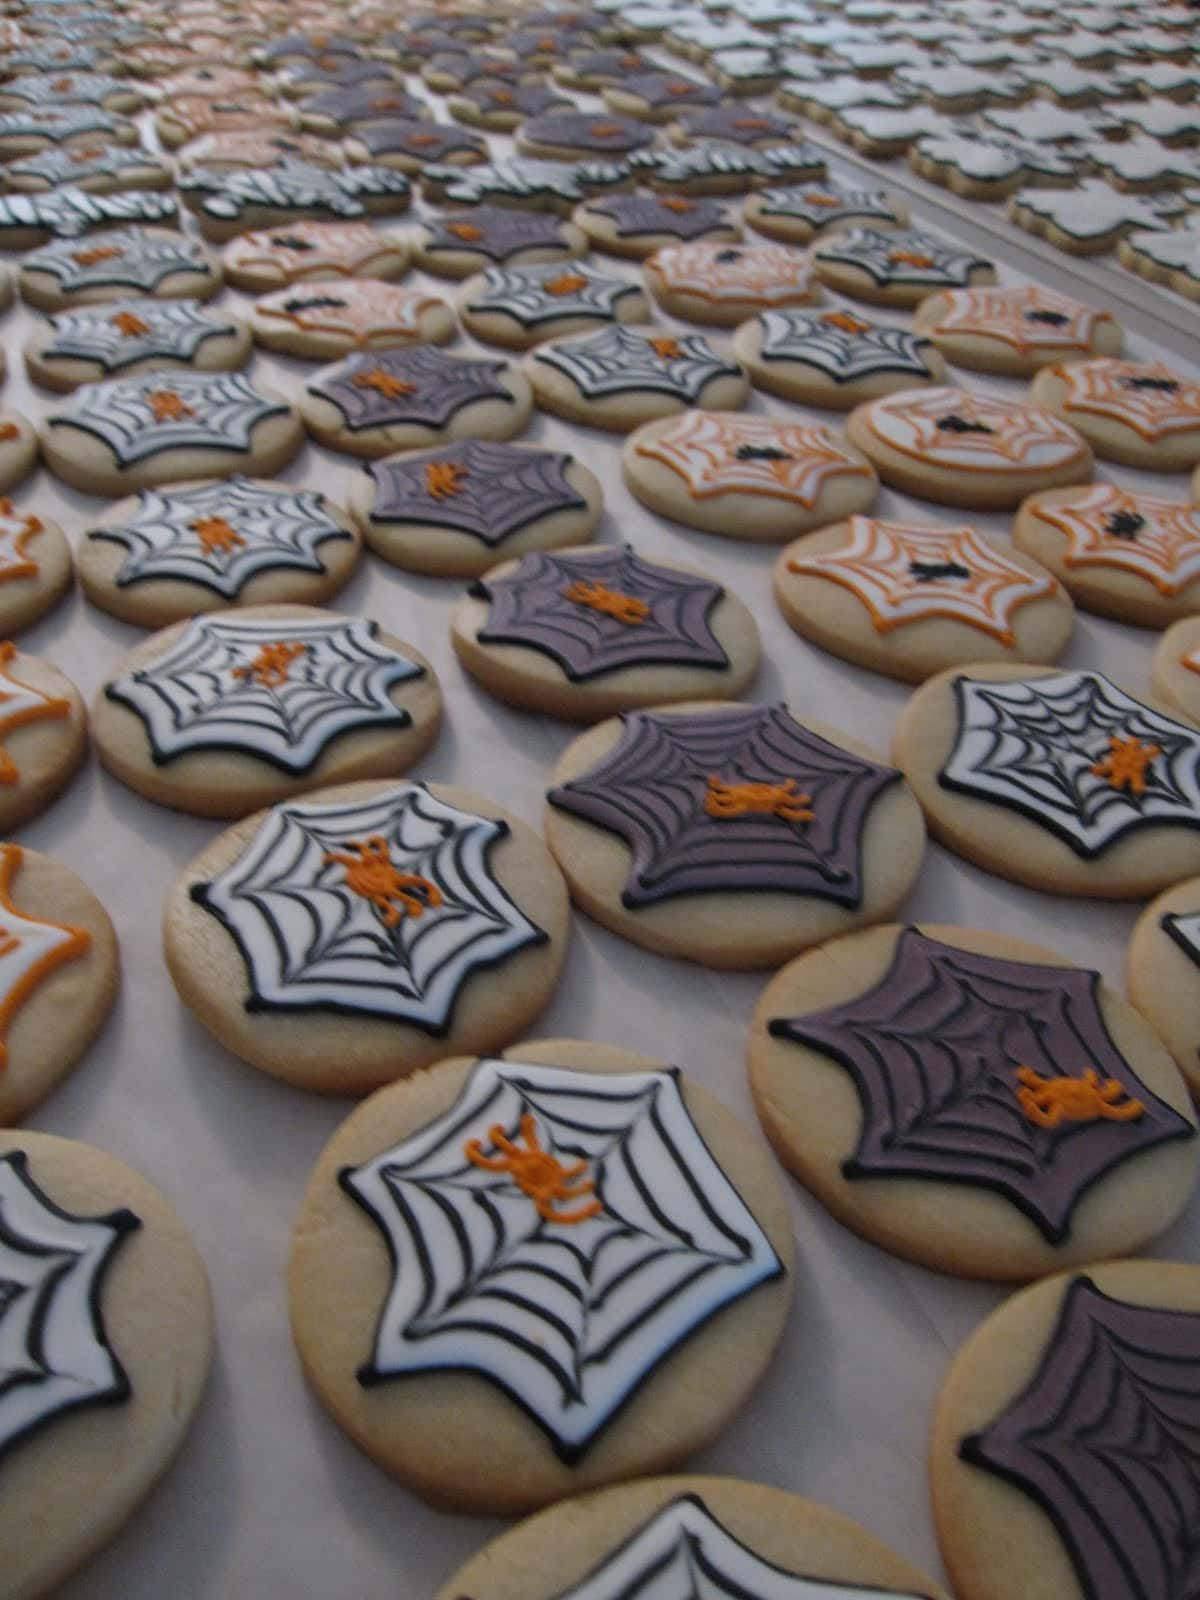 A variety of spiderweb-decorated frosted cookies